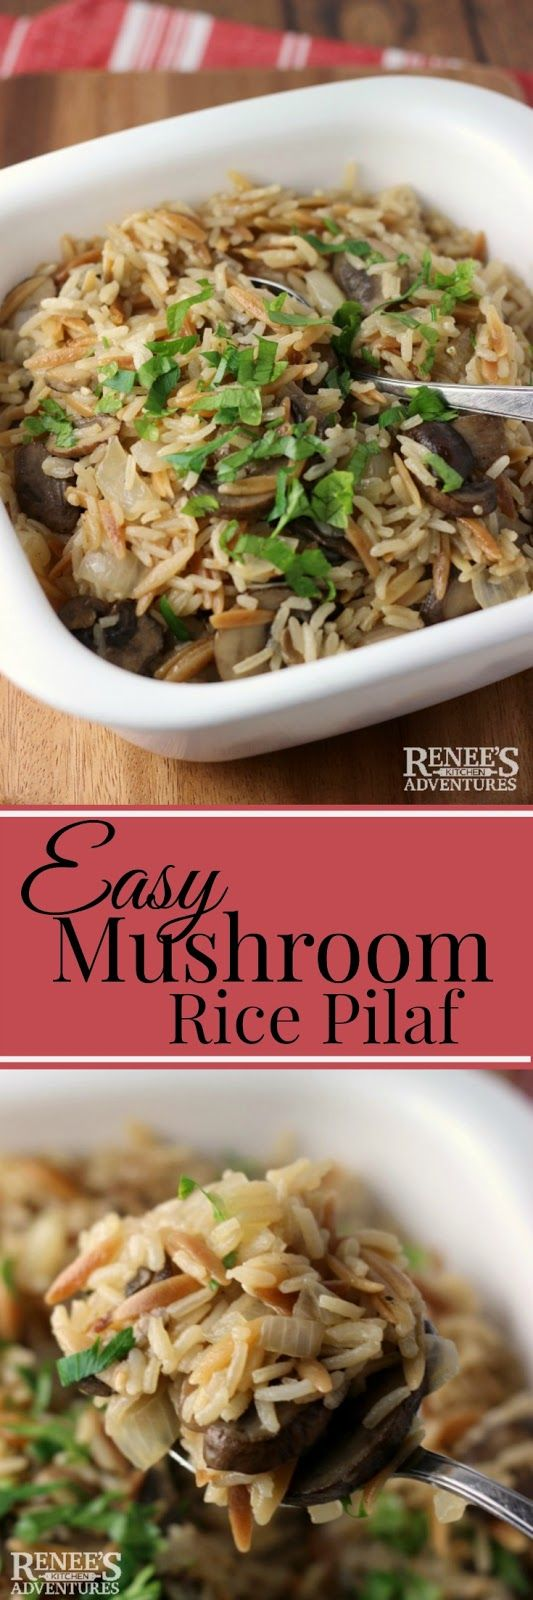 Easy Mushroom Rice Pilaf | Renee's Kitchen Adventures - easy side dish recipe made with fresh mushrooms. Perfect for any holiday or everyday of the year! #SundaySupper